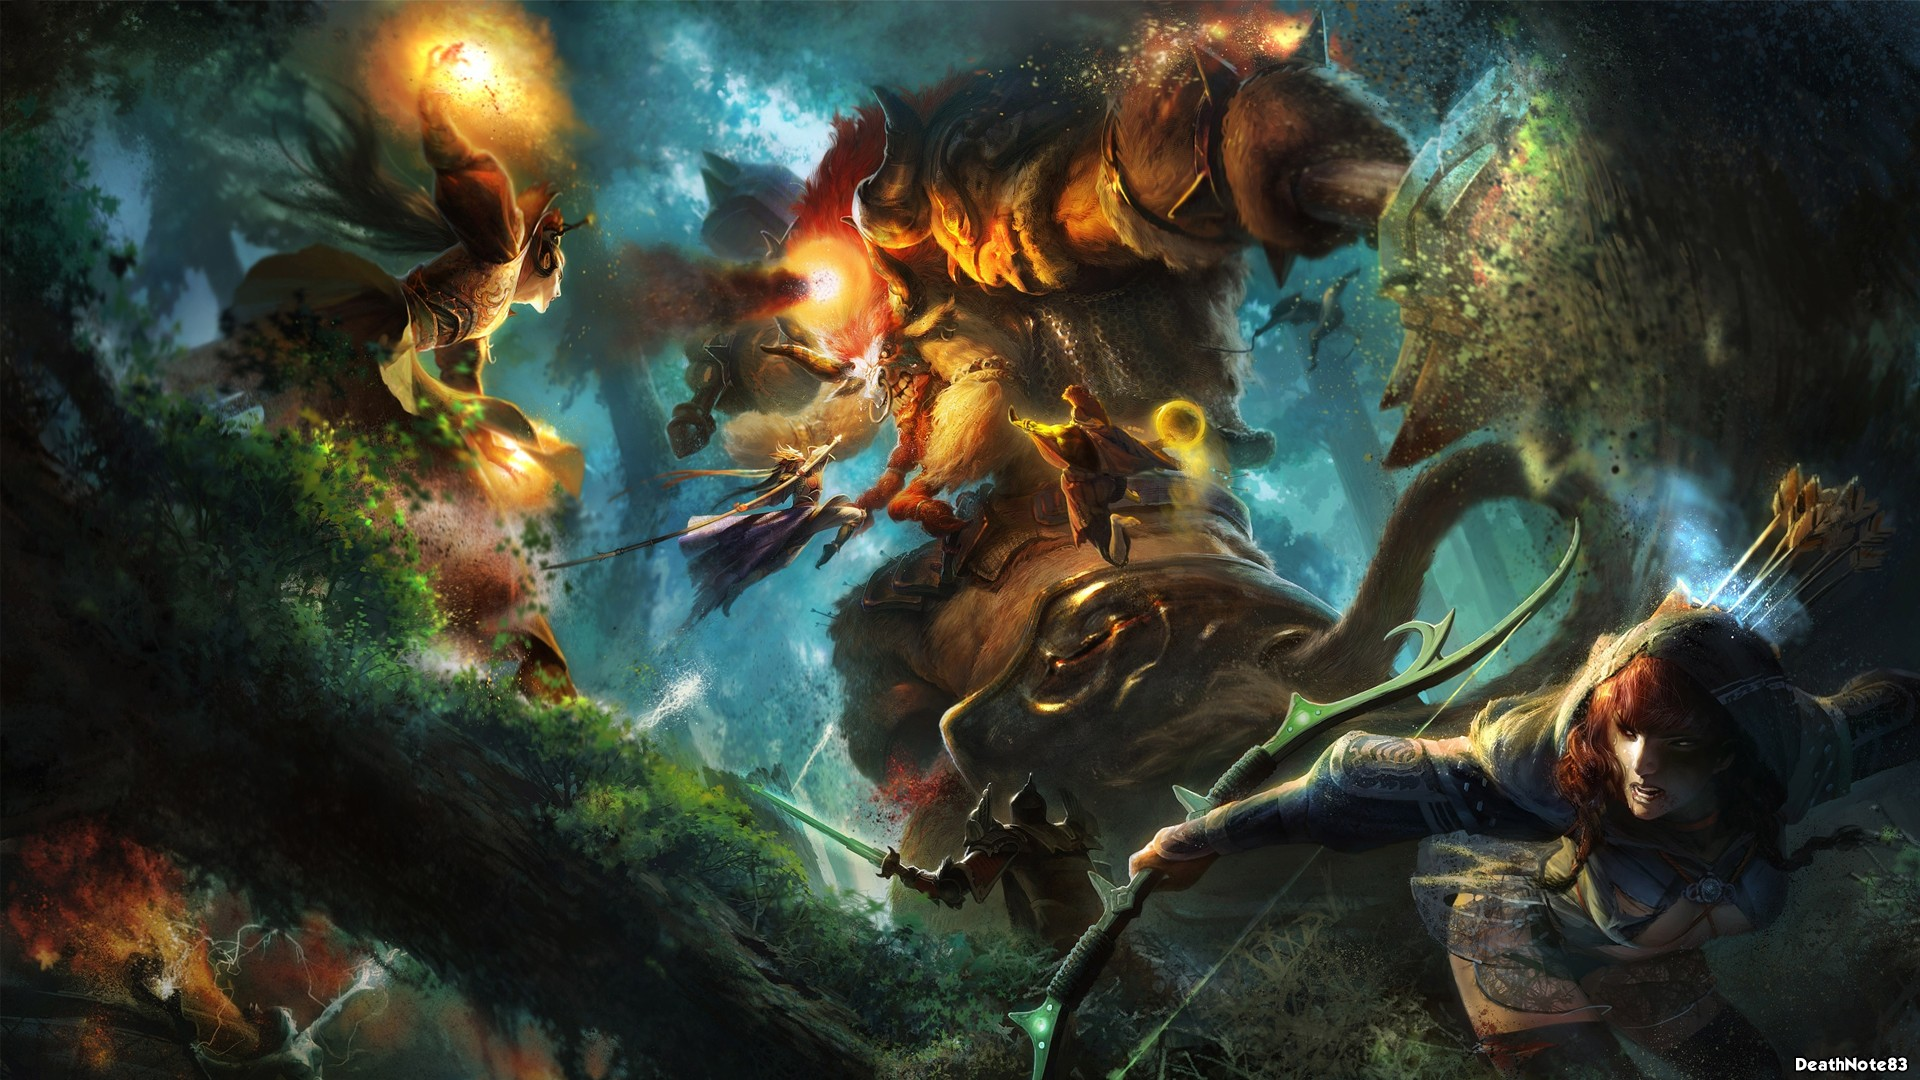 Epic Battle Fantasy 3 HD Wallpapers Backgrounds 1920x1080